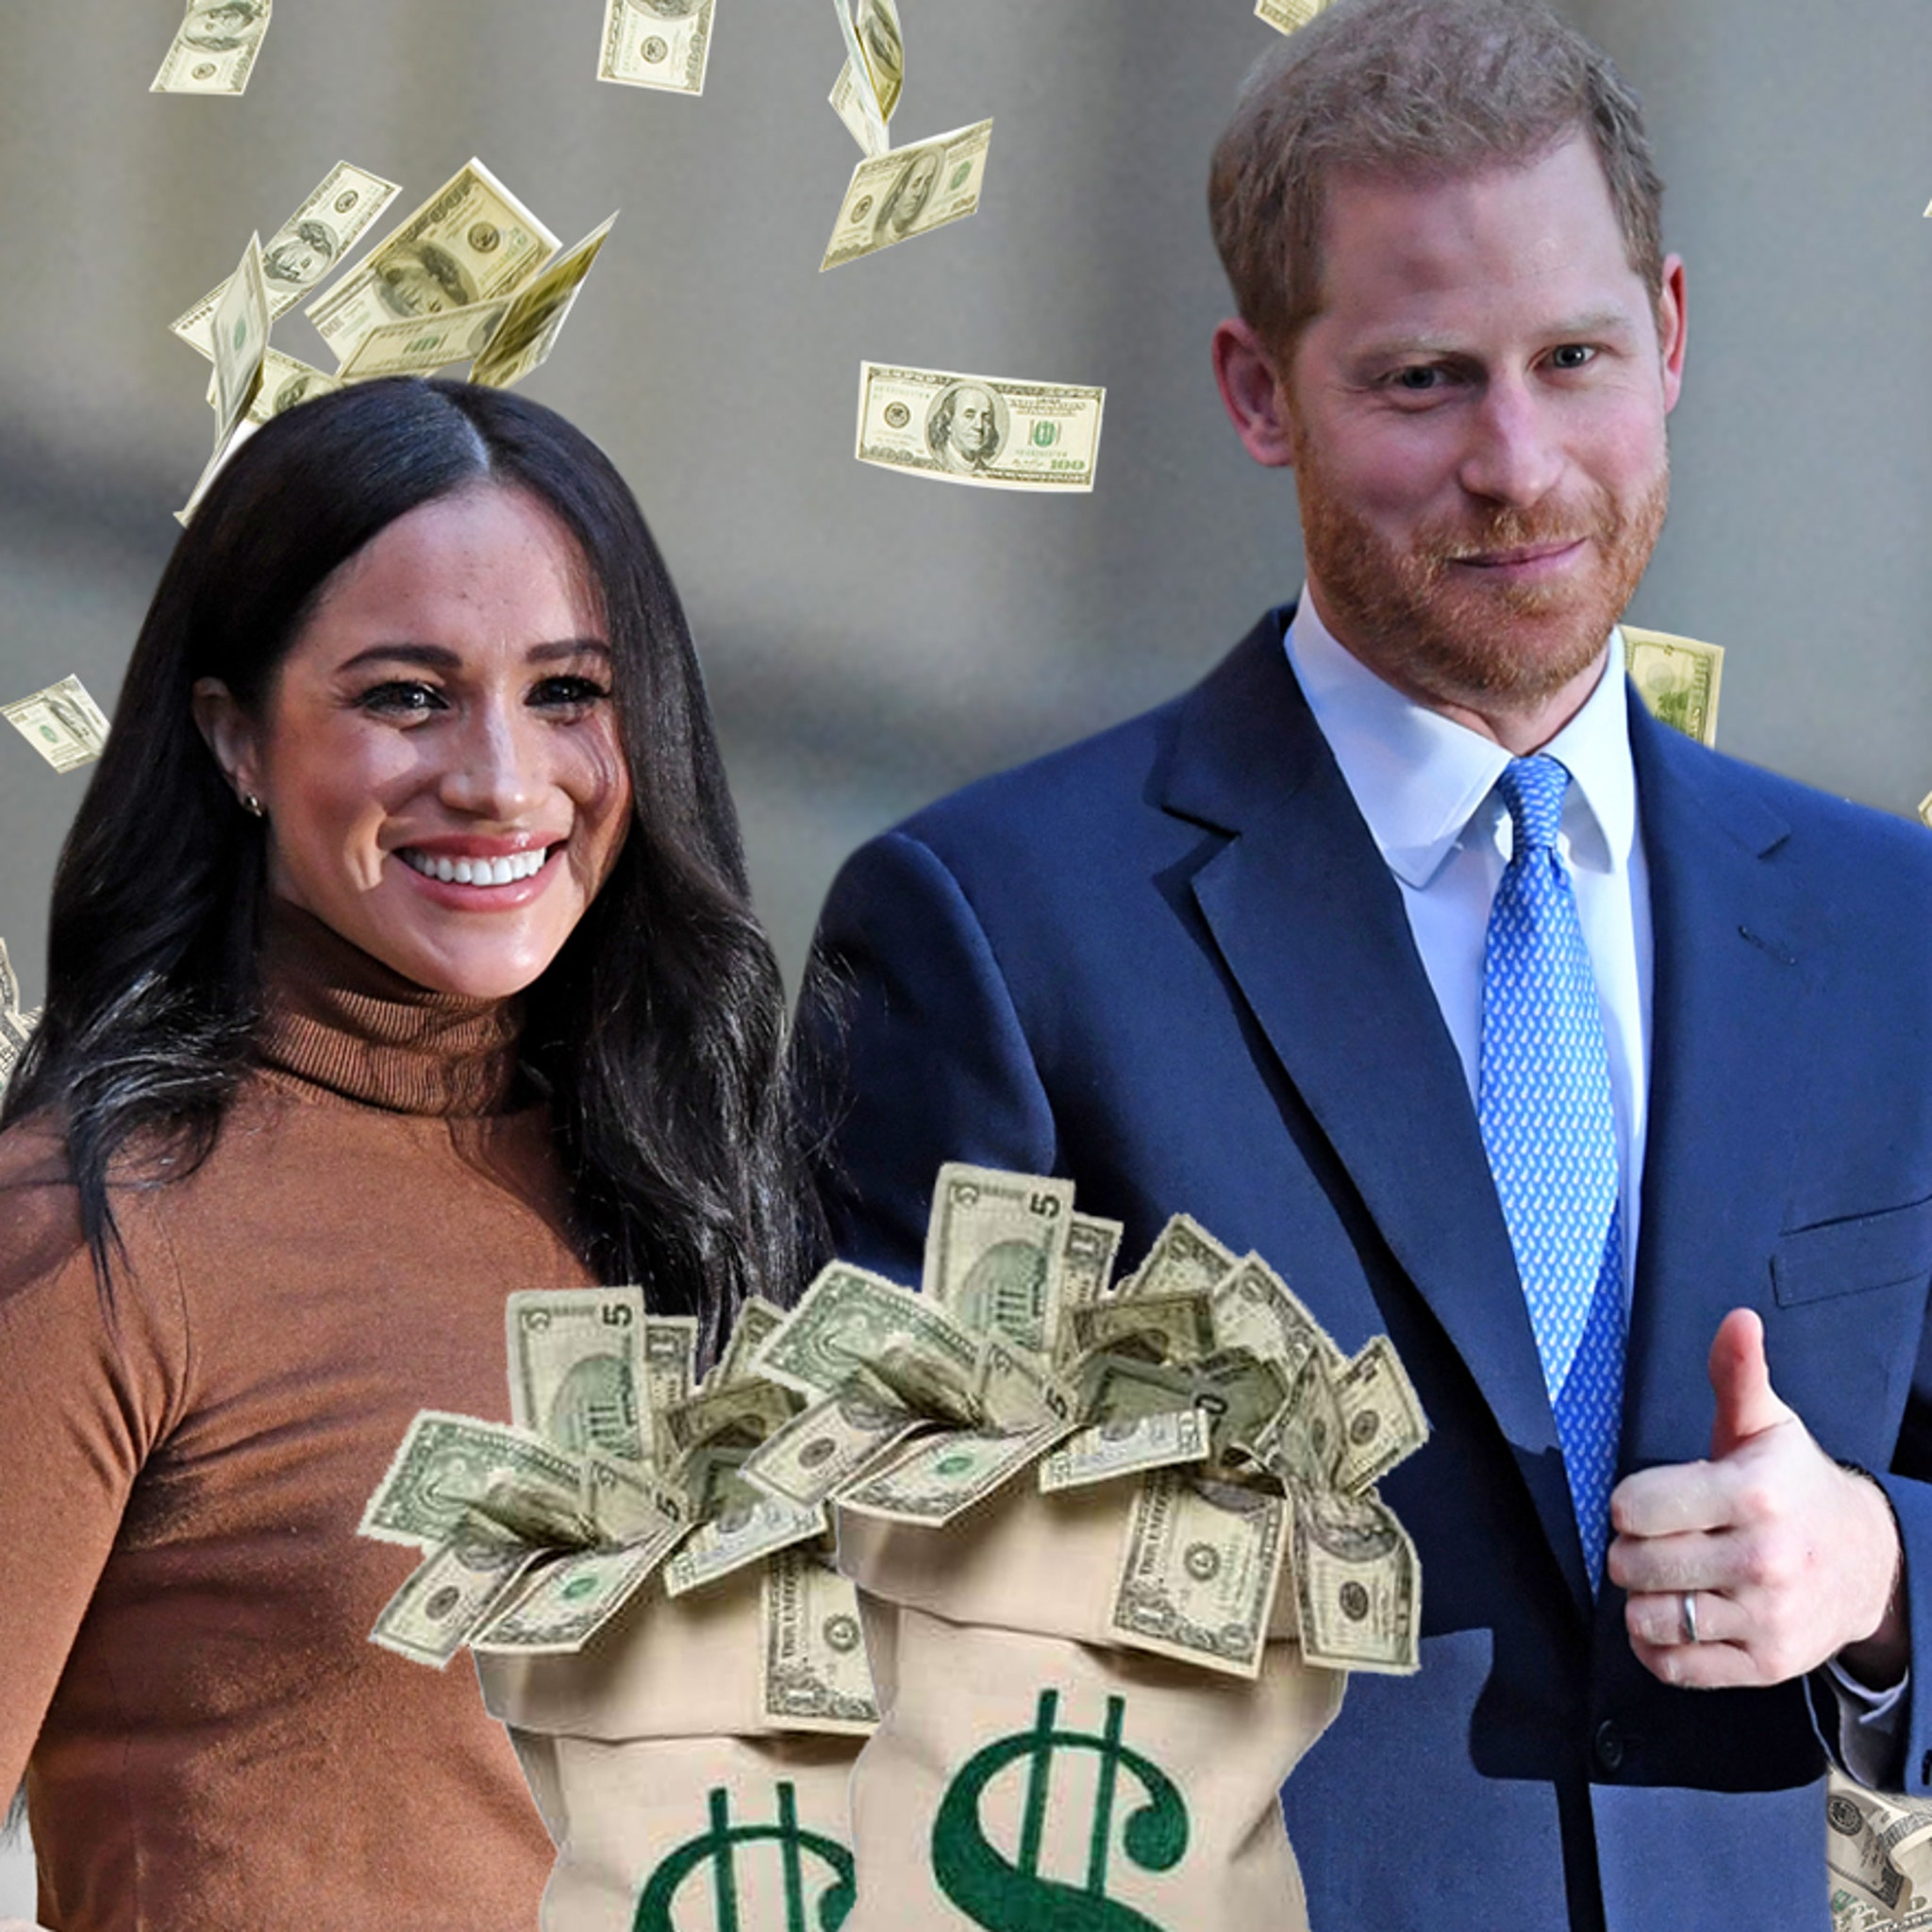 Meghan Markle and Prince Harry Would Easily Fetch $500k Each To Speak